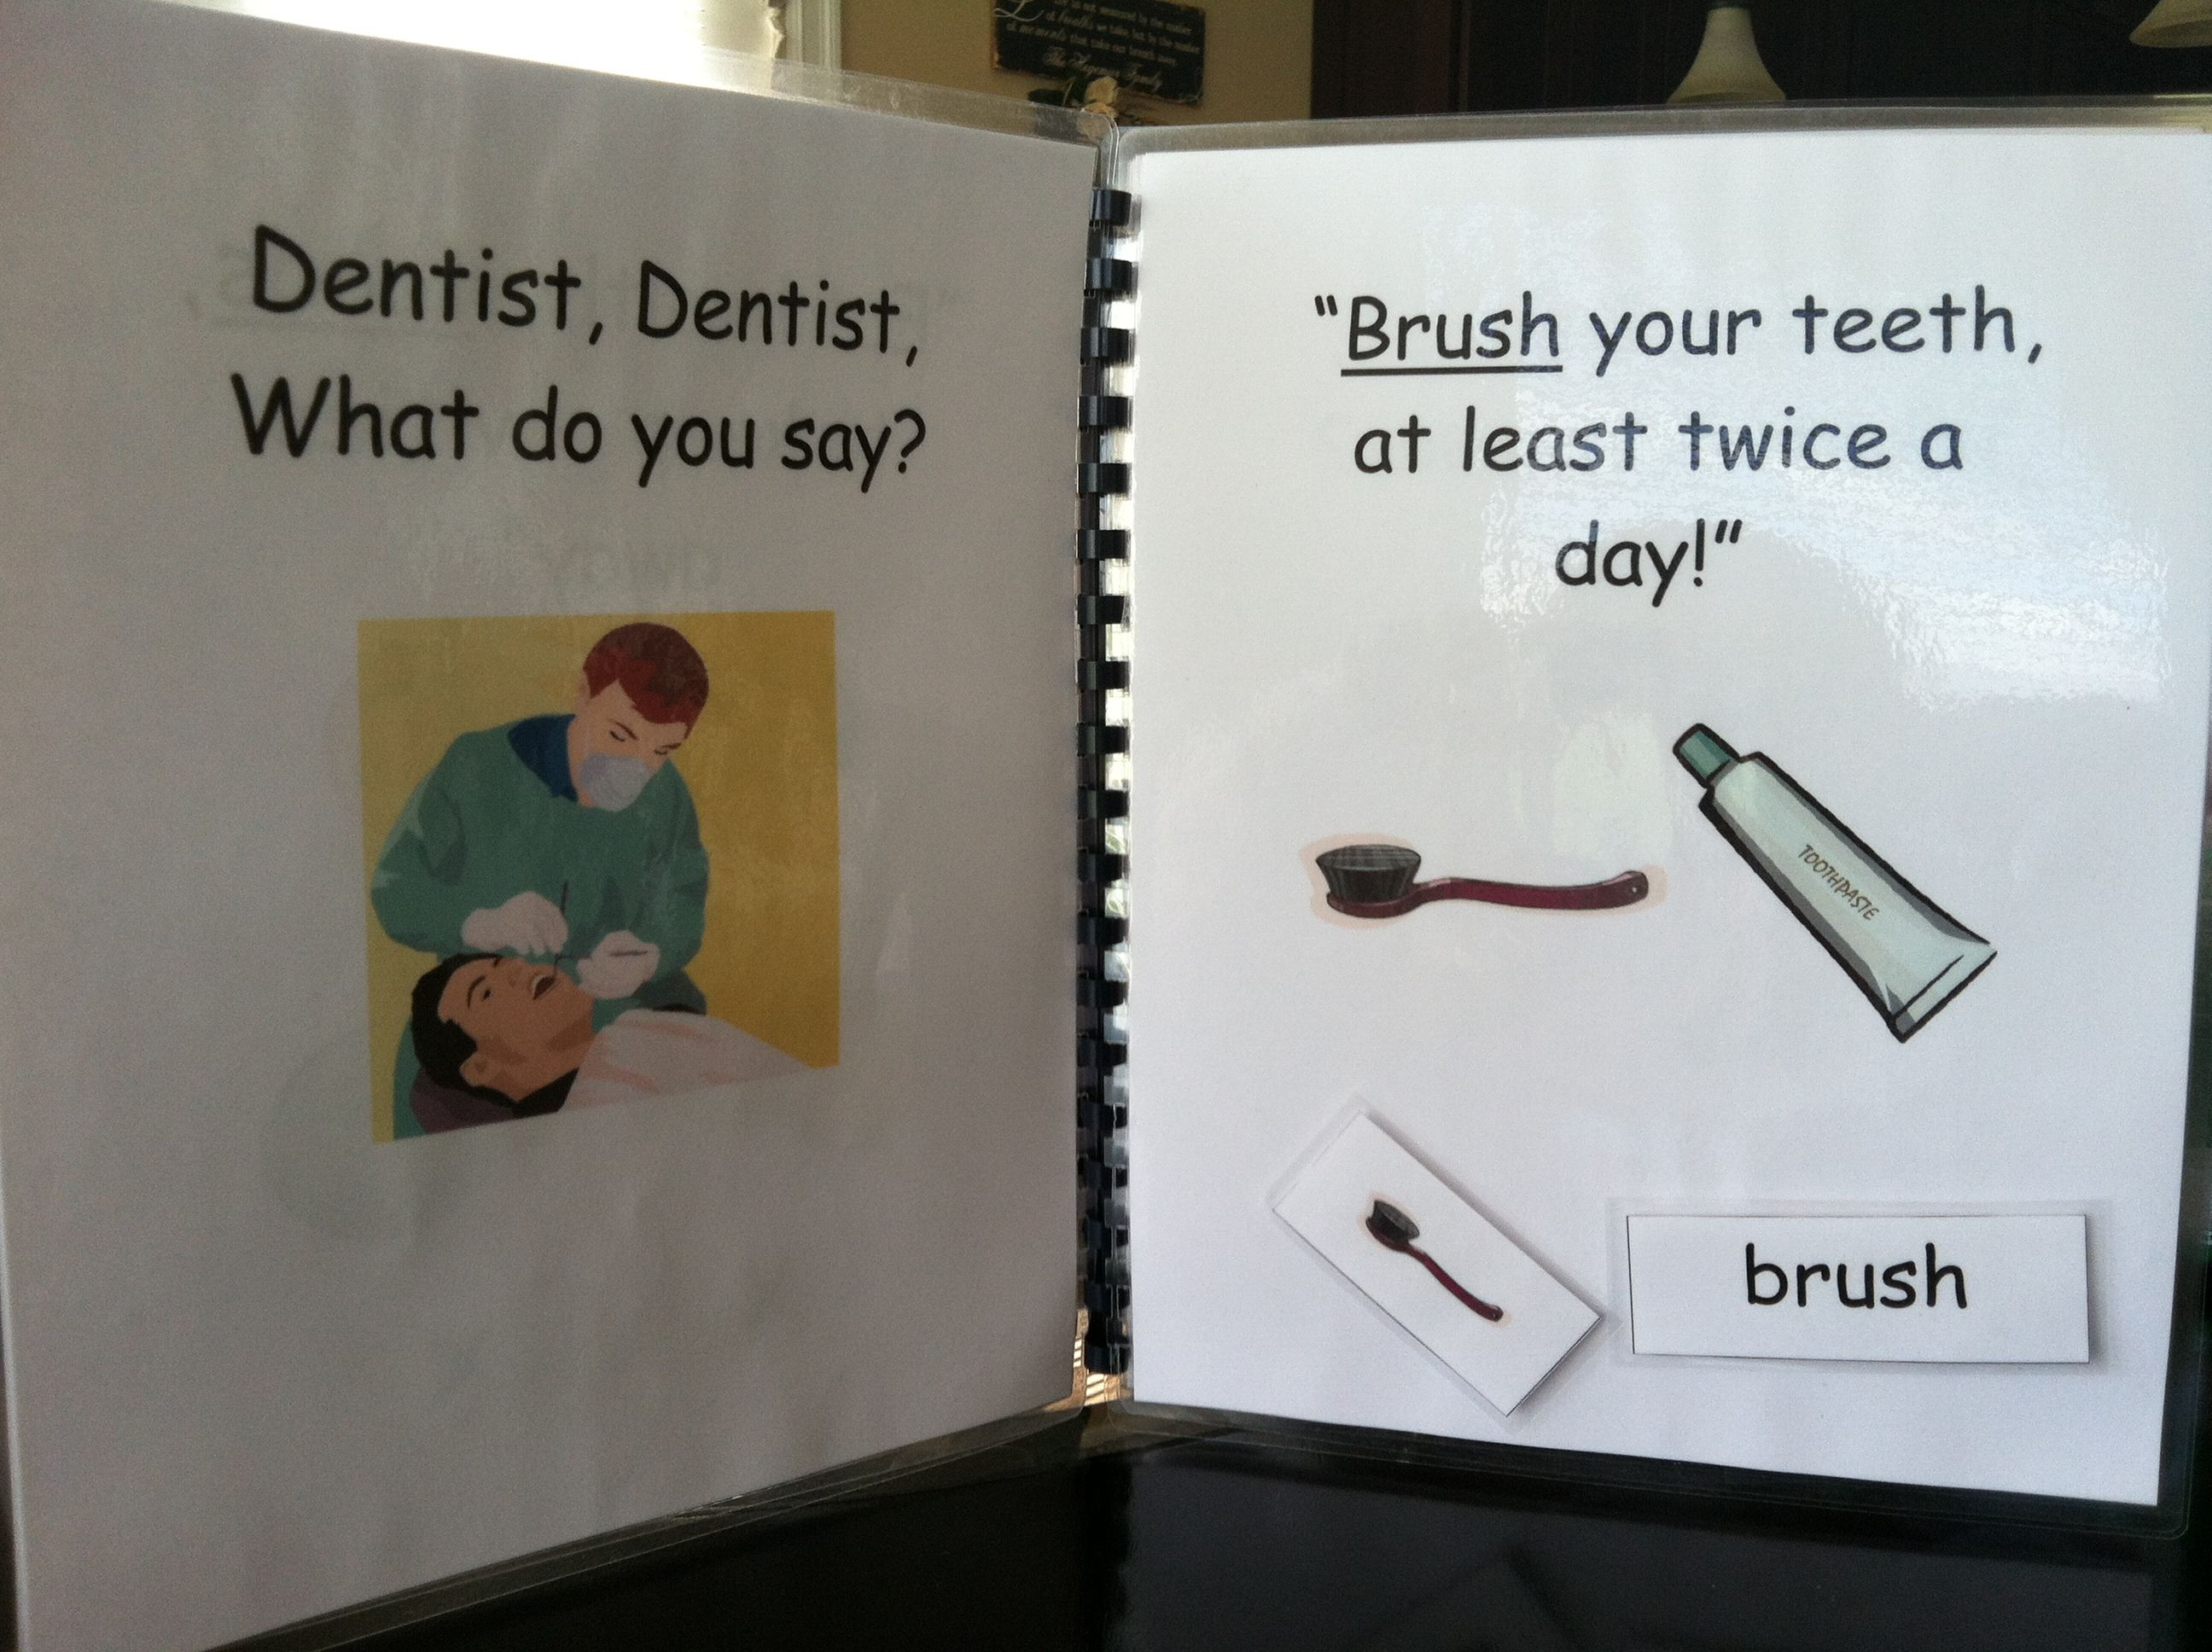 Need An Interactive Dentist Or Oral Health Themed Activity